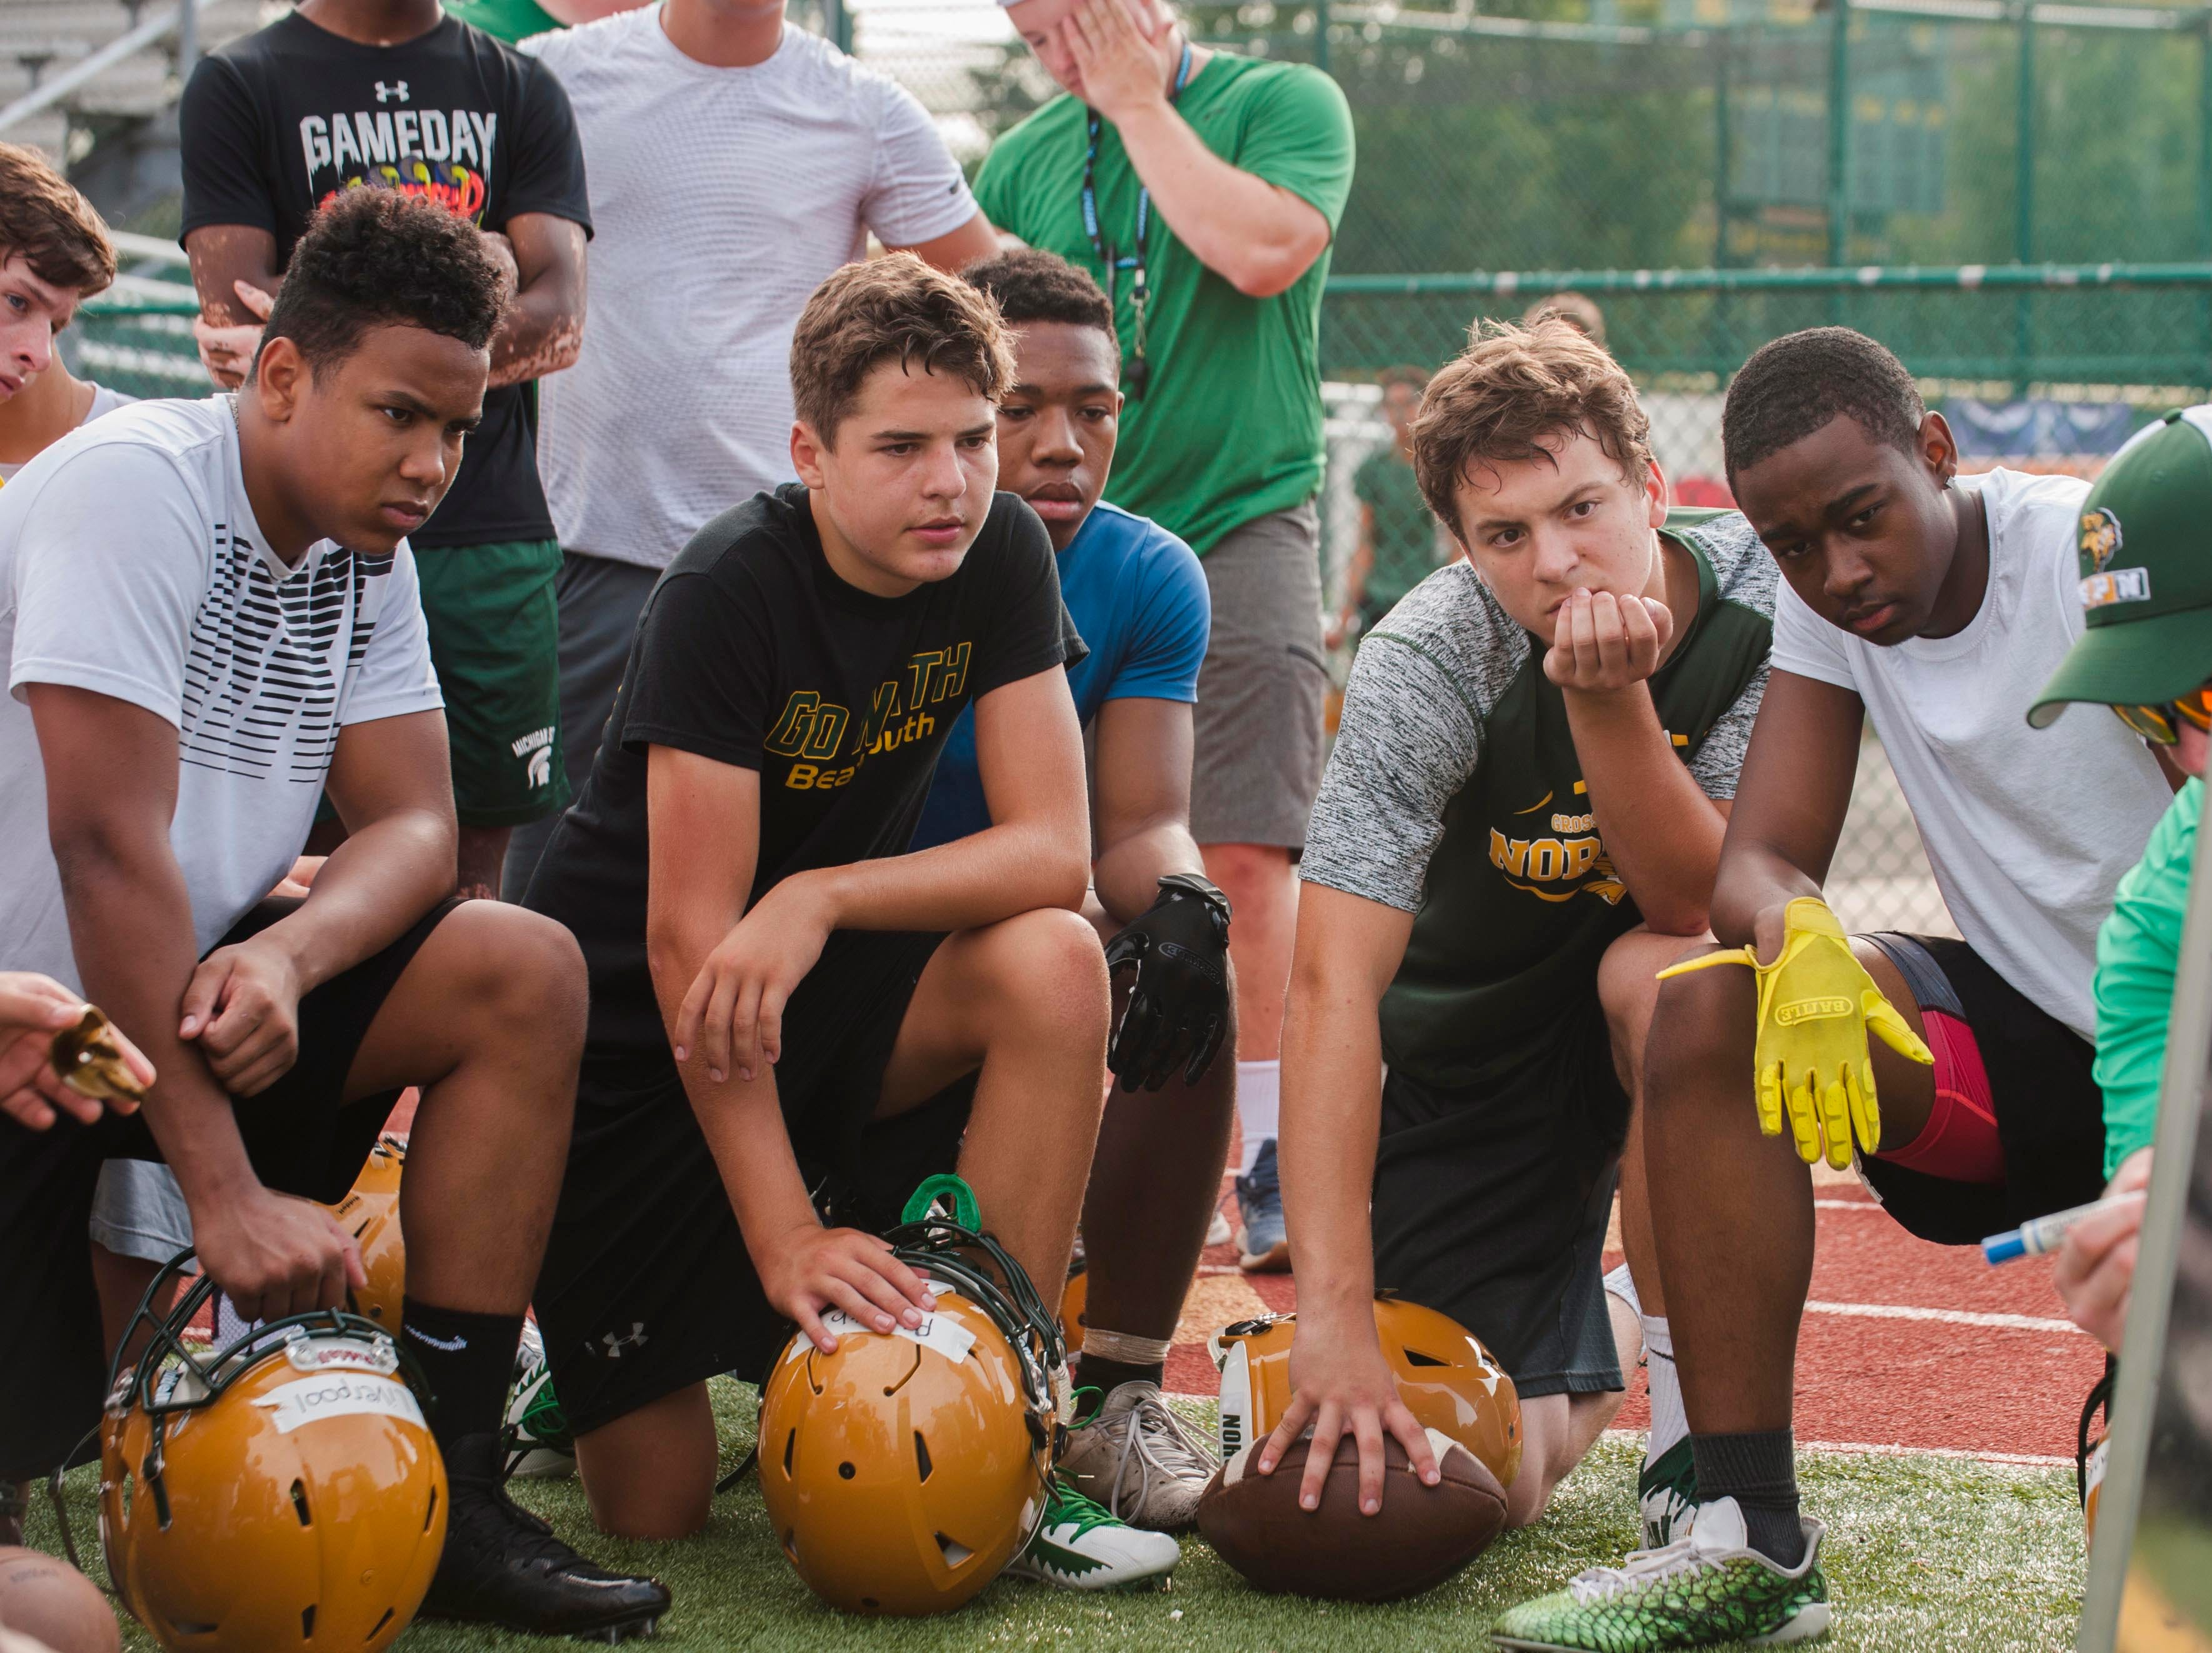 Grosse Pointe North players, including (left to right, front row) Jason Liverpool, Joe Plieth, Brendan Cwiklinski, and Joaquin Franklin watch and listen as assistant head coach/offensive coordinator Dennis Pascoe draws up a play on a white board.